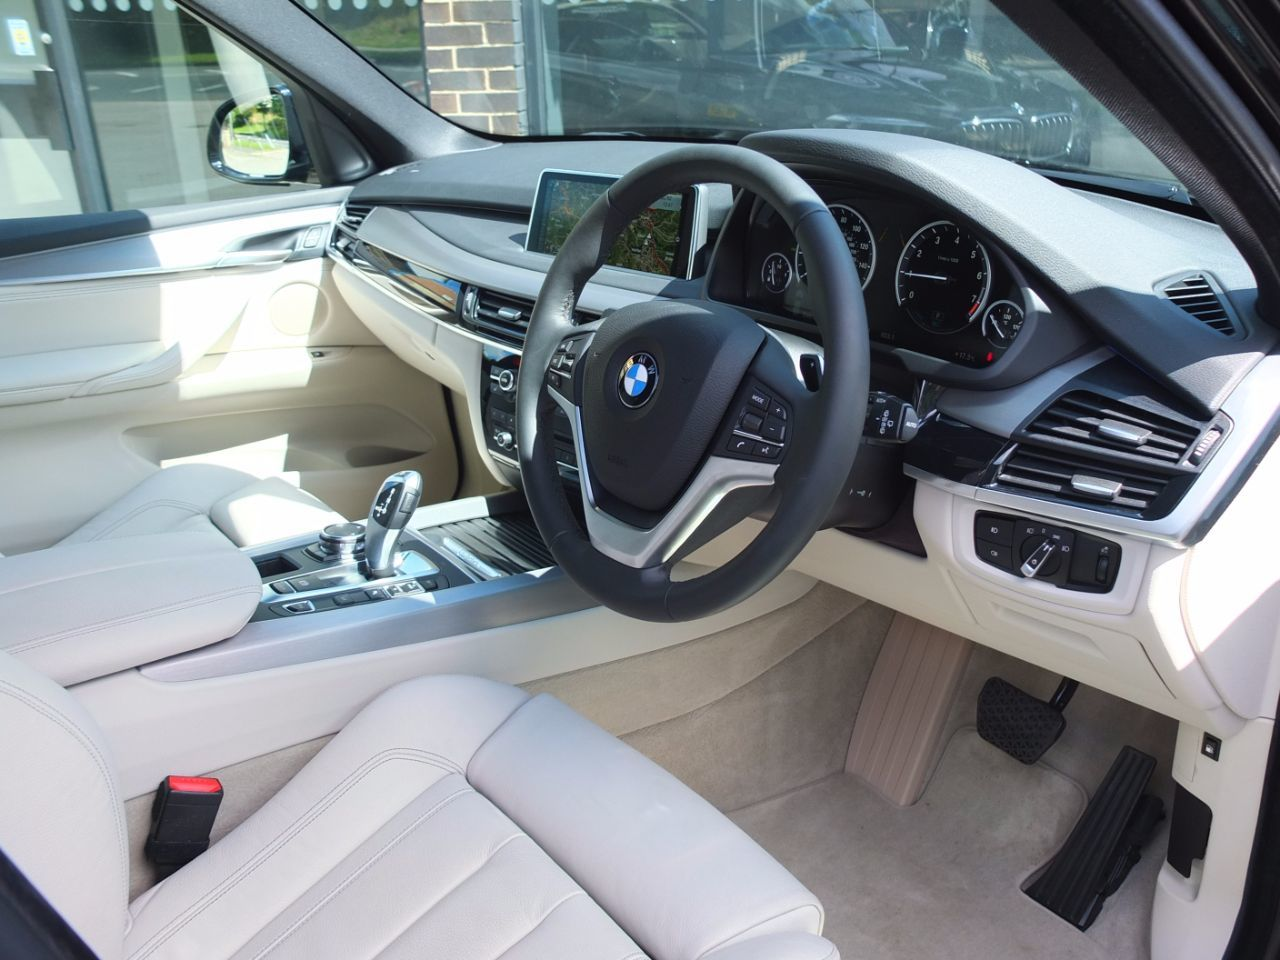 BMW X5 2.0 xDrive40e SE Dynamic (Electric Plug in Hybrid) Auto Estate Hybrid Black Sapphire Metallic